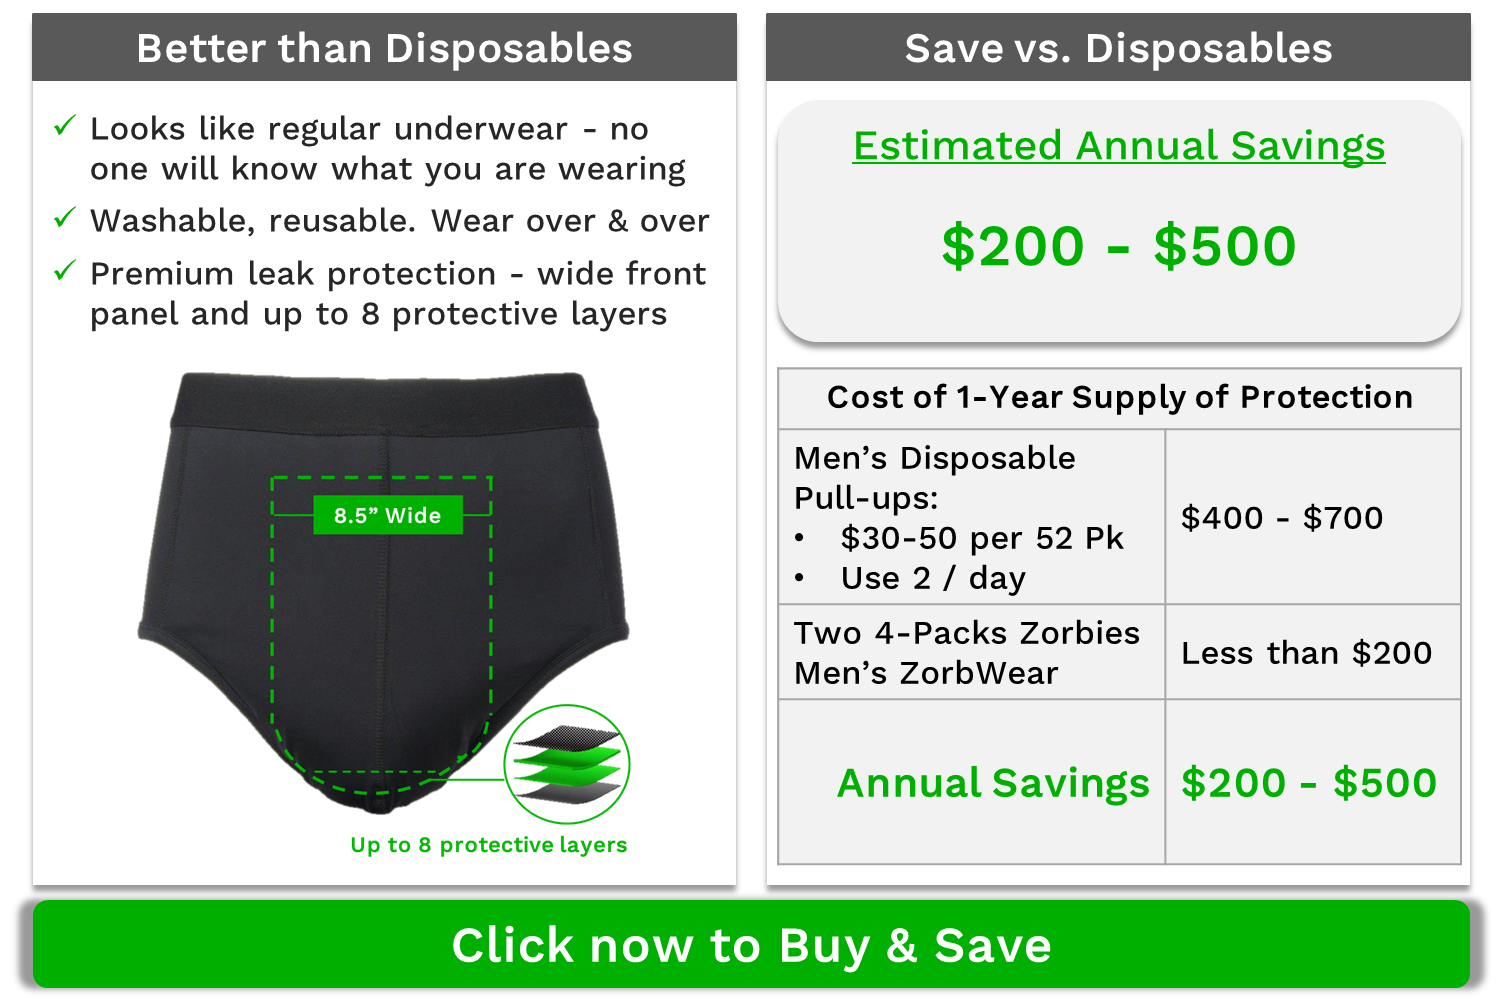 Zorbies Men's Washable, Reusable Incontinence Briefs vs. Disposables - look like regular briefs and save you money